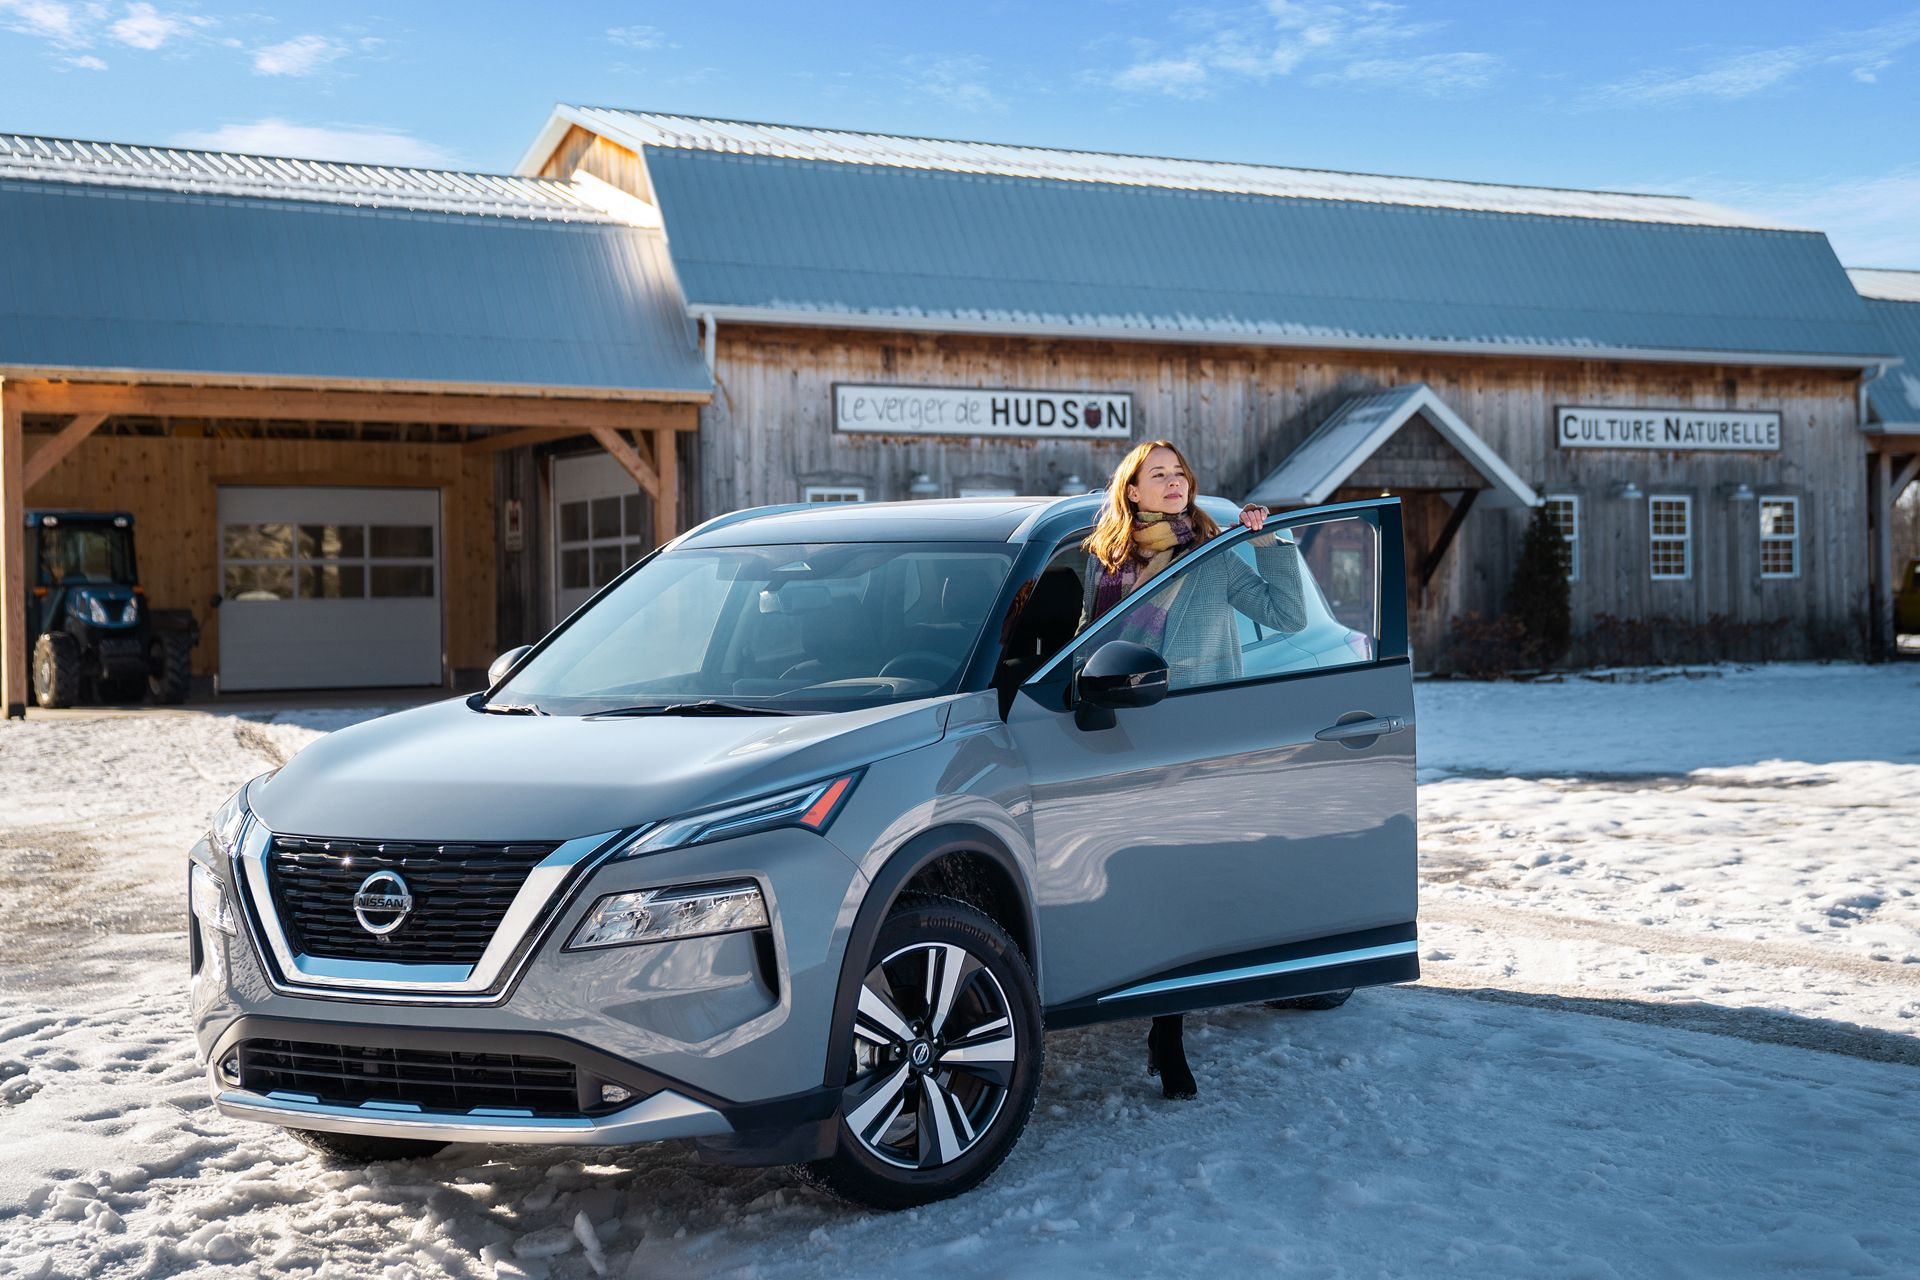 Karine Vanasse for Nissan Rogue by videographer and photographer Bruno Florin